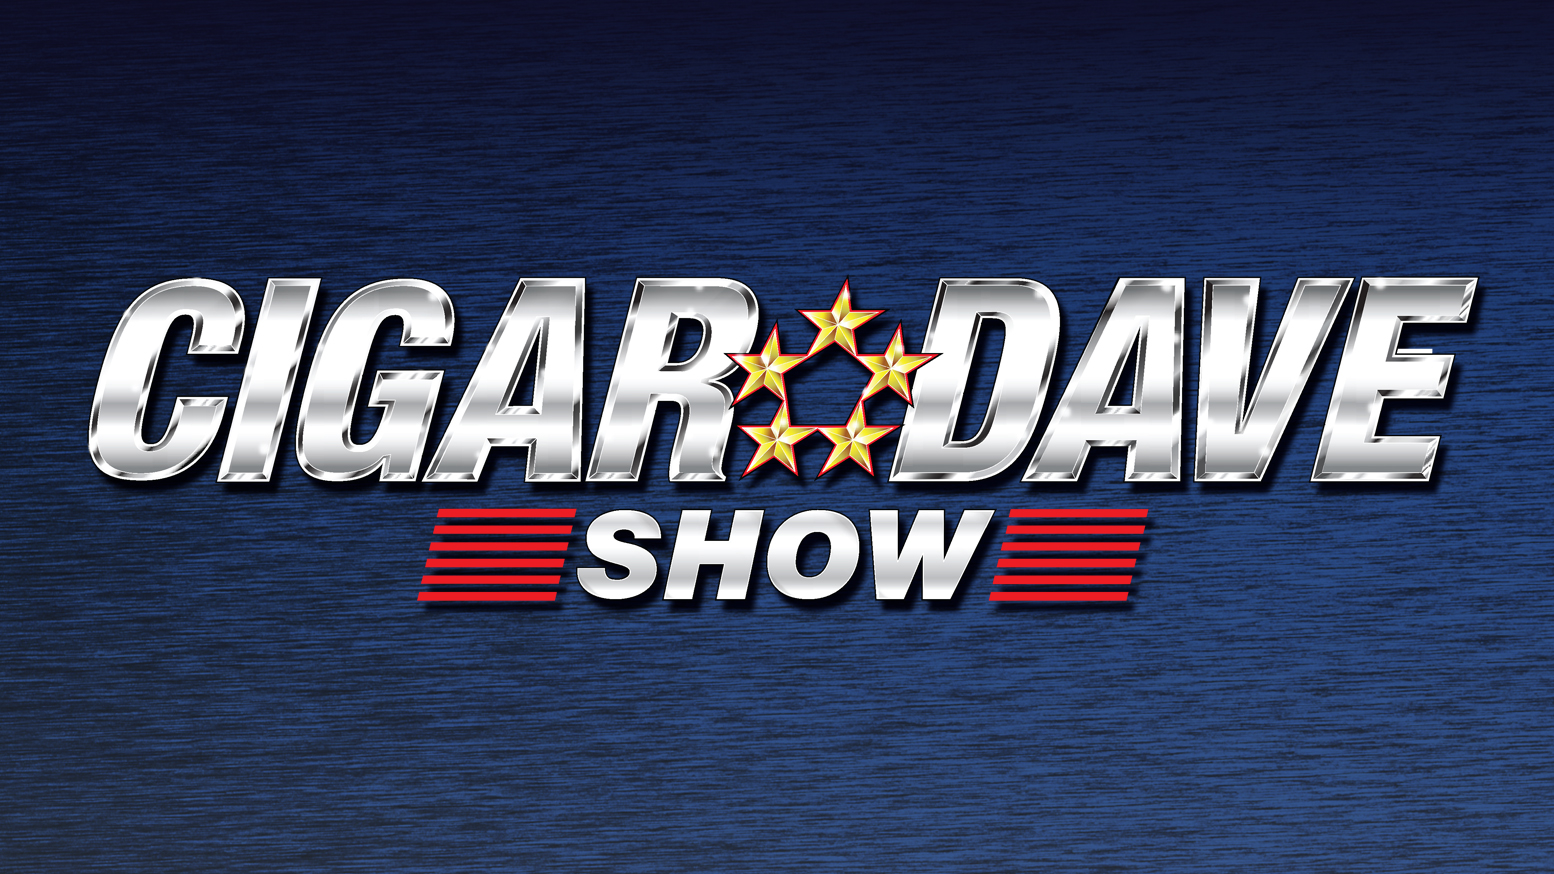 Cigar Dave Show Logo on a blue background